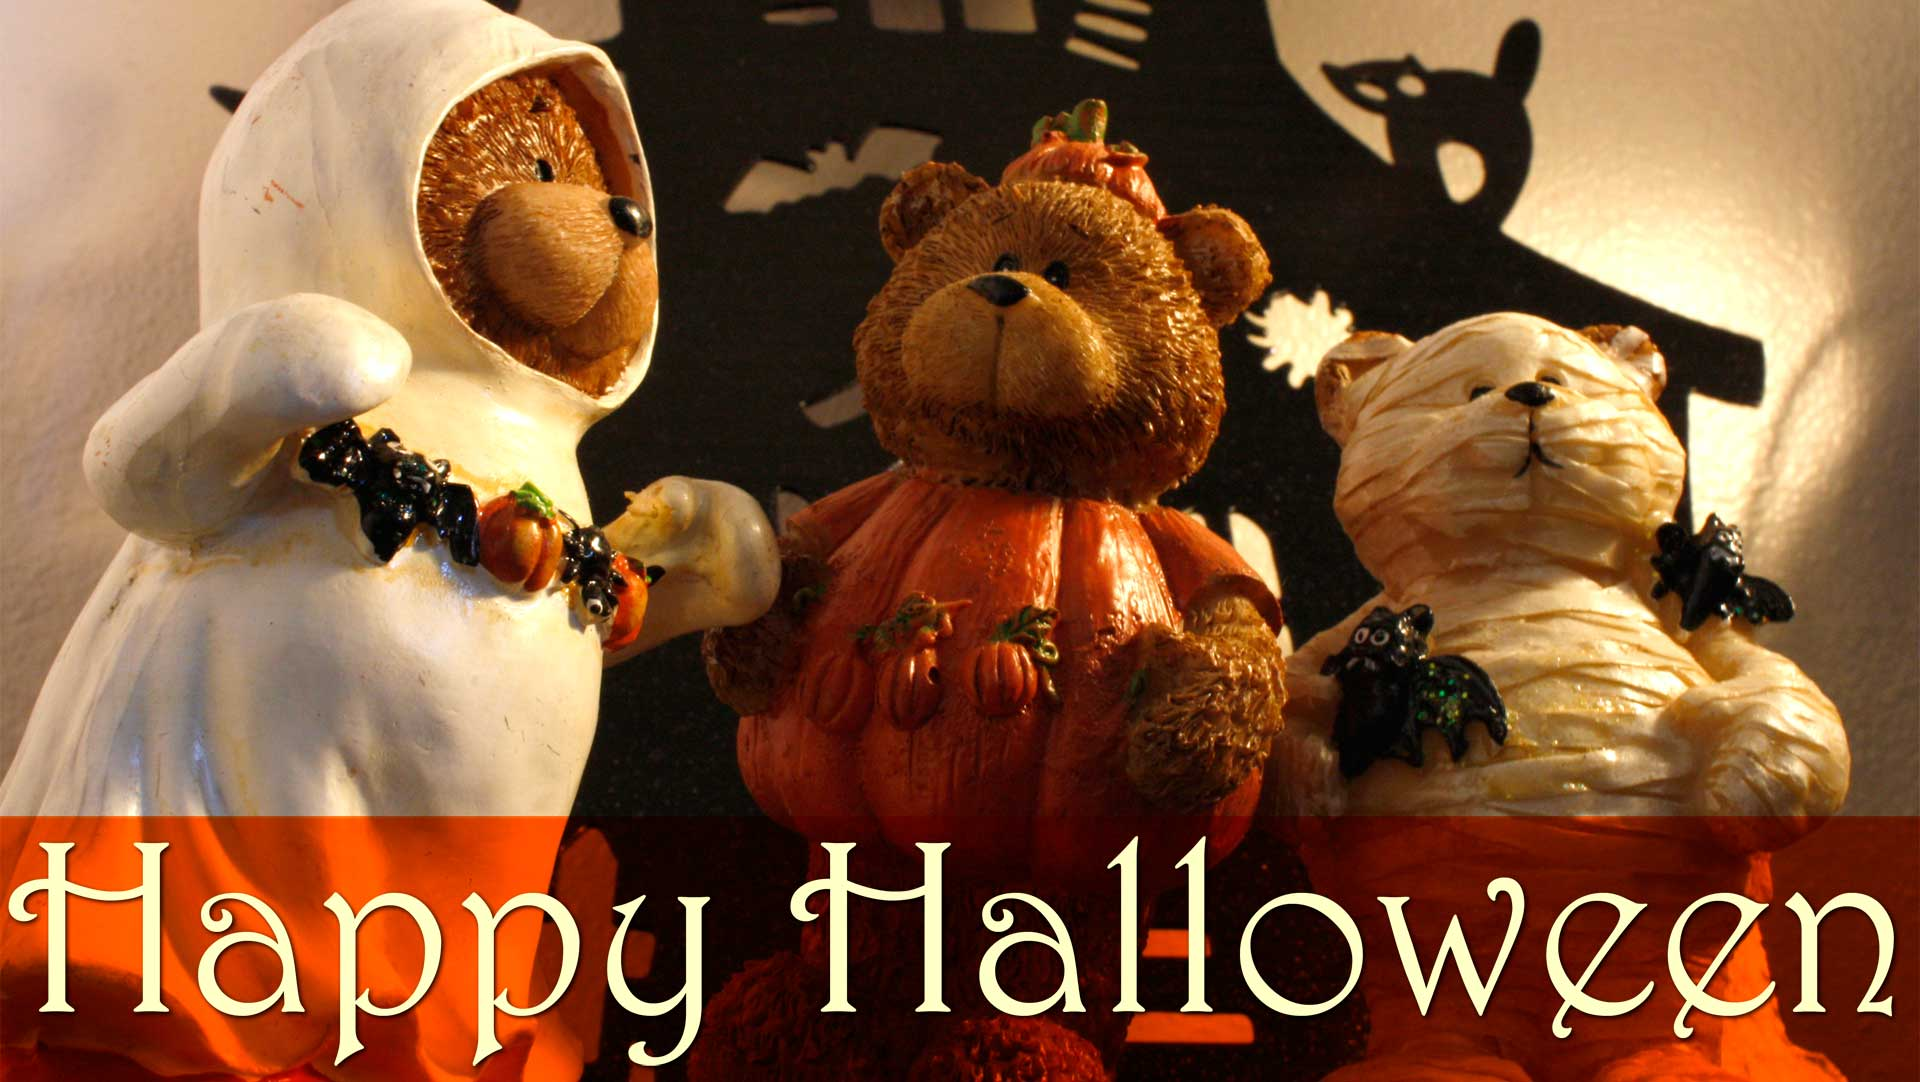 Halloween Bears, Bears, Ghost, Halloween, Mummy, Pumpkin, Teddy Wallpaper